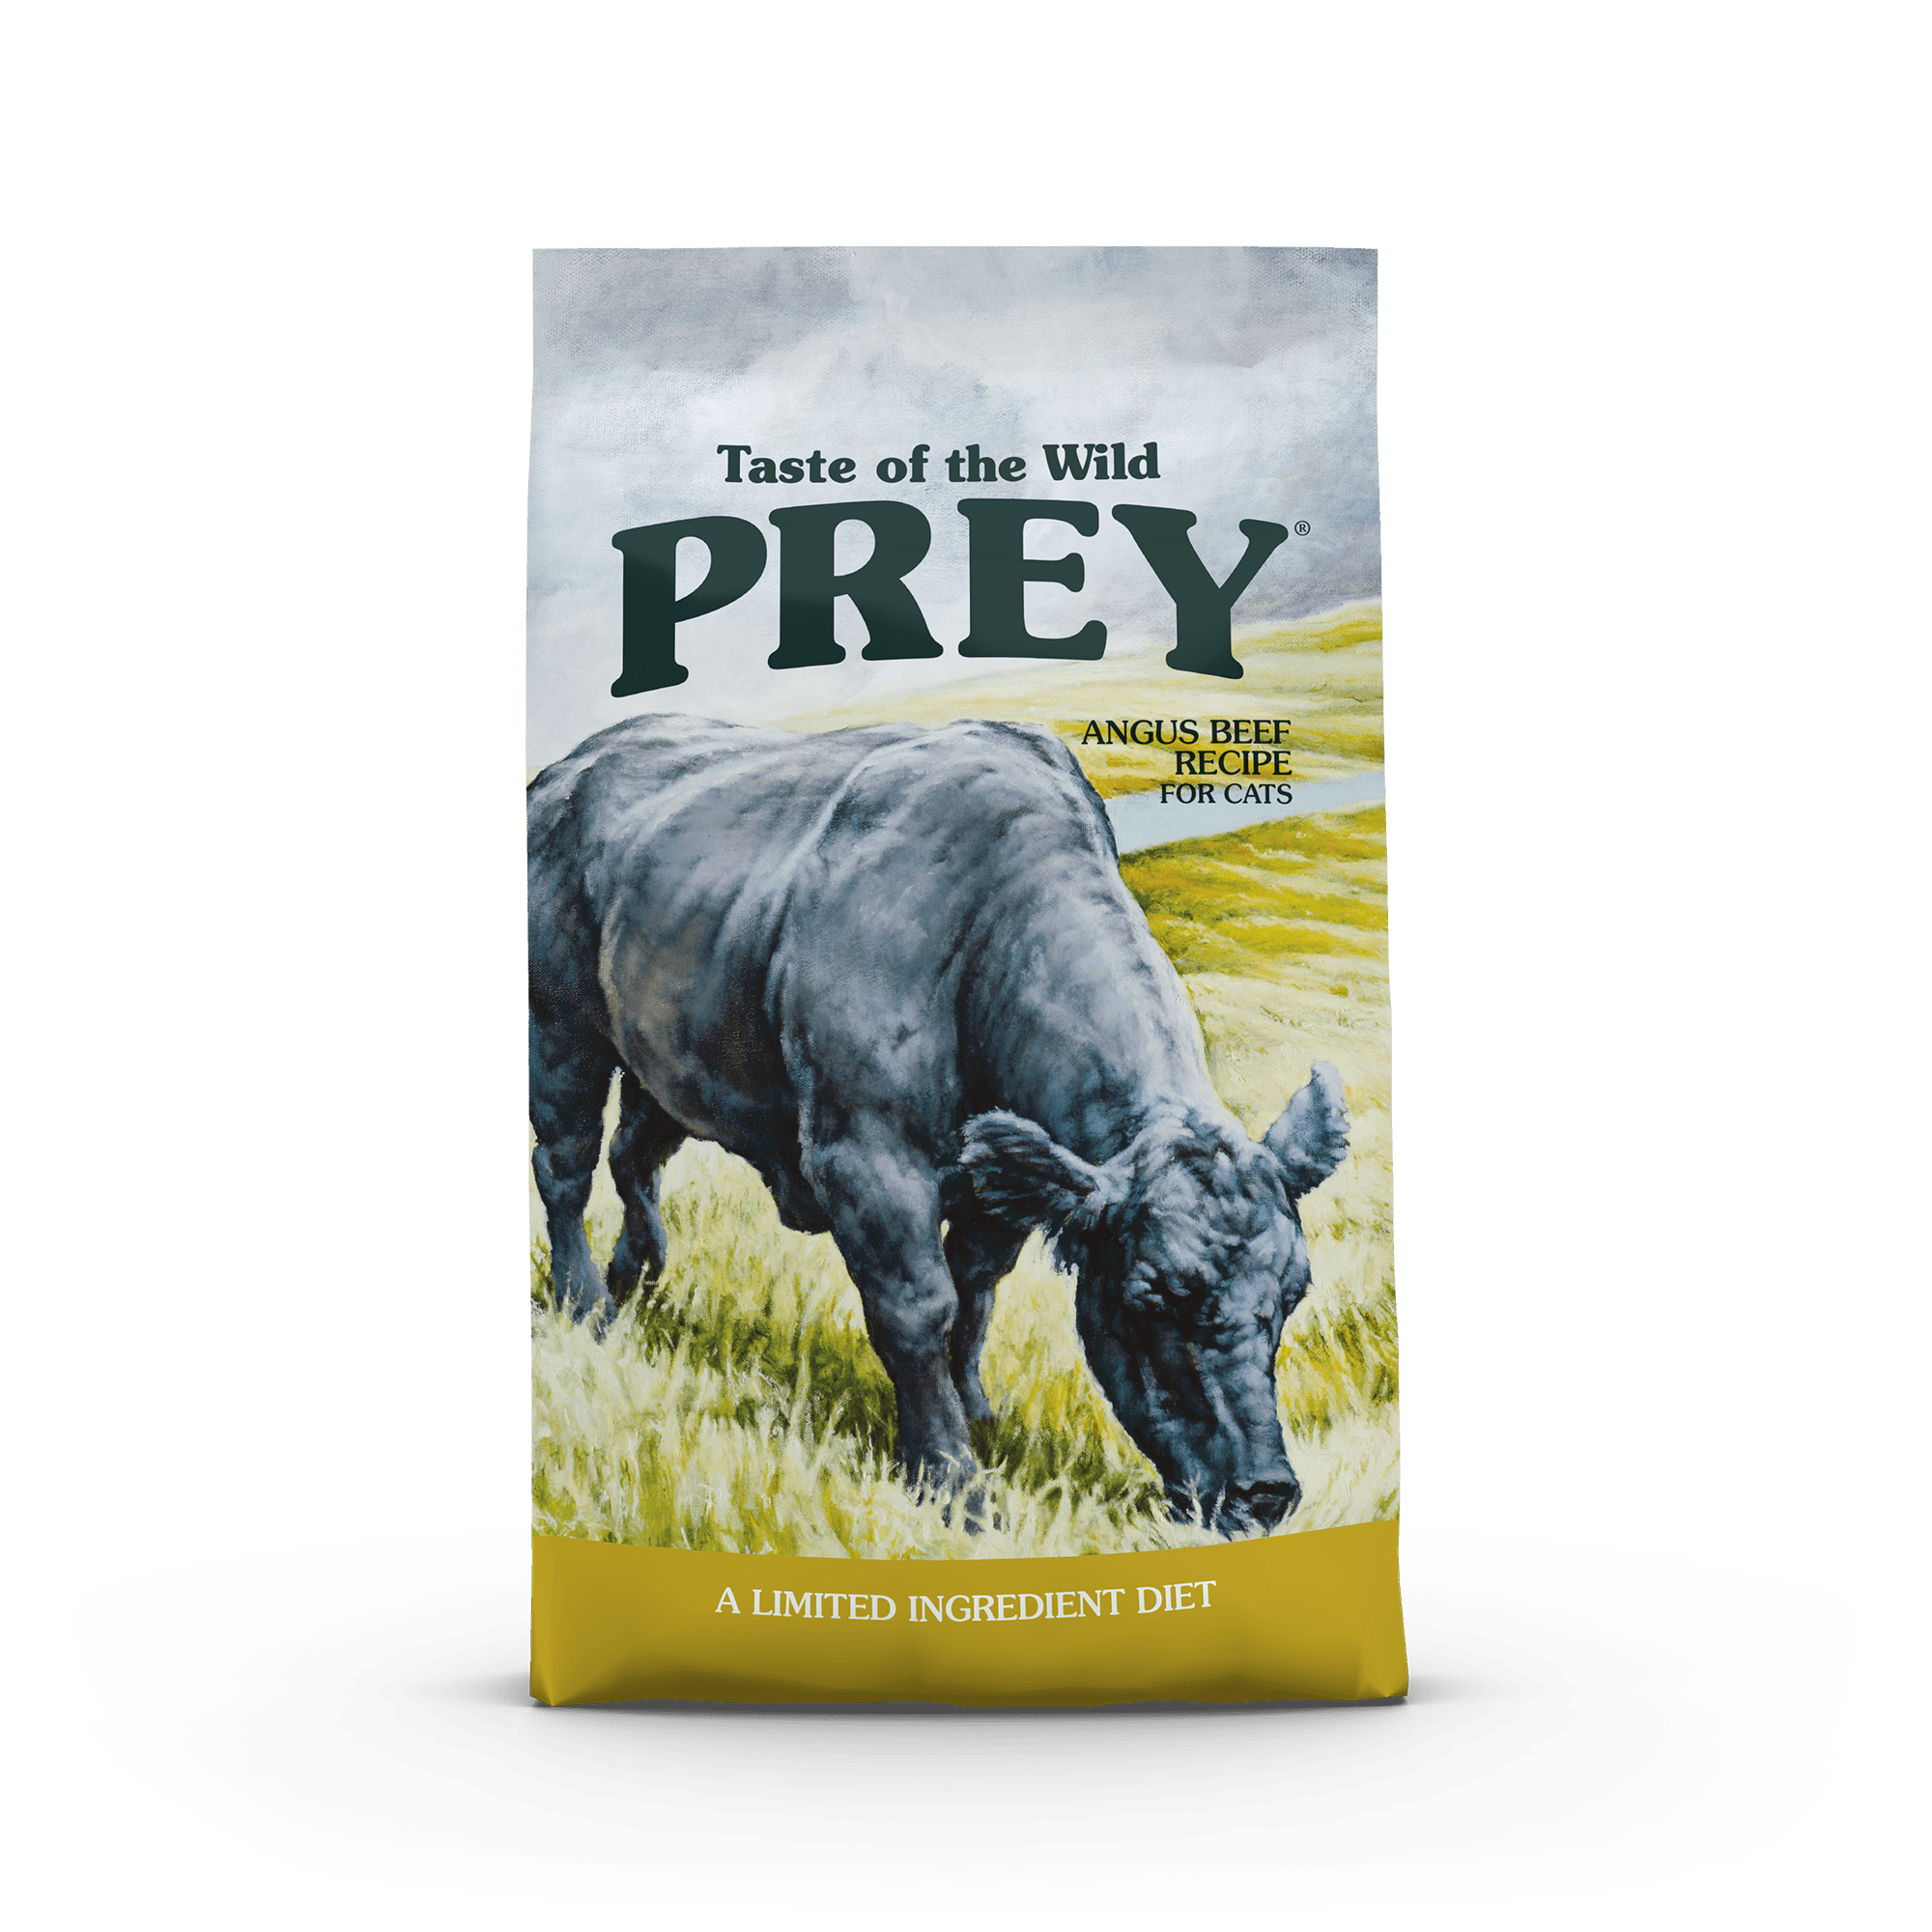 Taste of the Wild PREY Angus Beef Limited Ingredient Recipe for Cats package